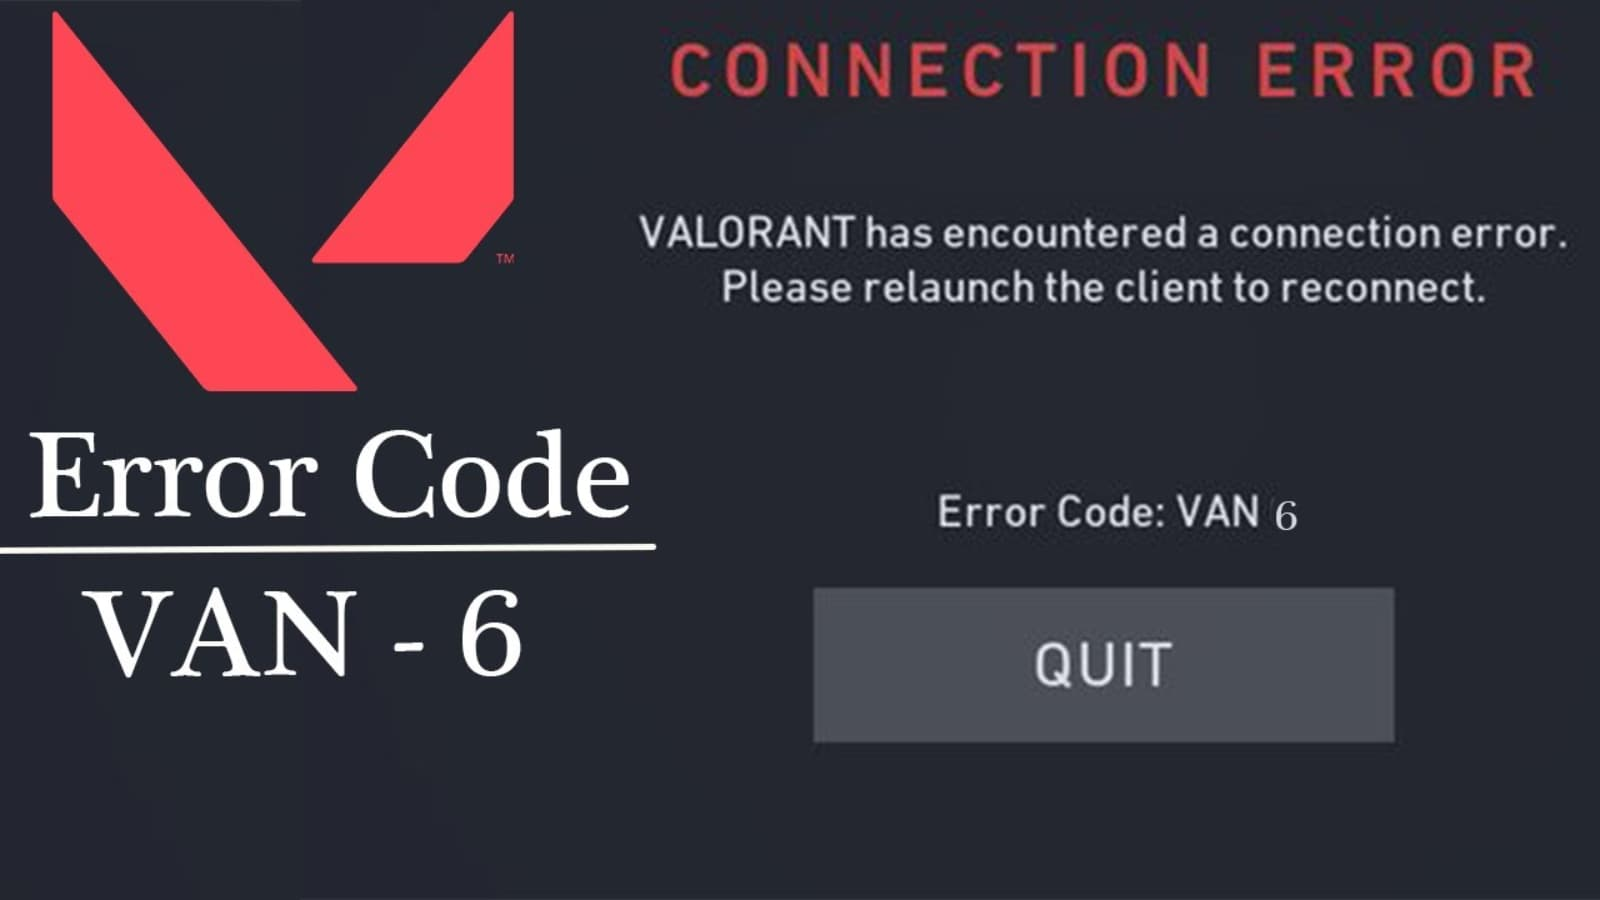 How To Fix Valorant Error Code VAN 6 Easily: All you need to know